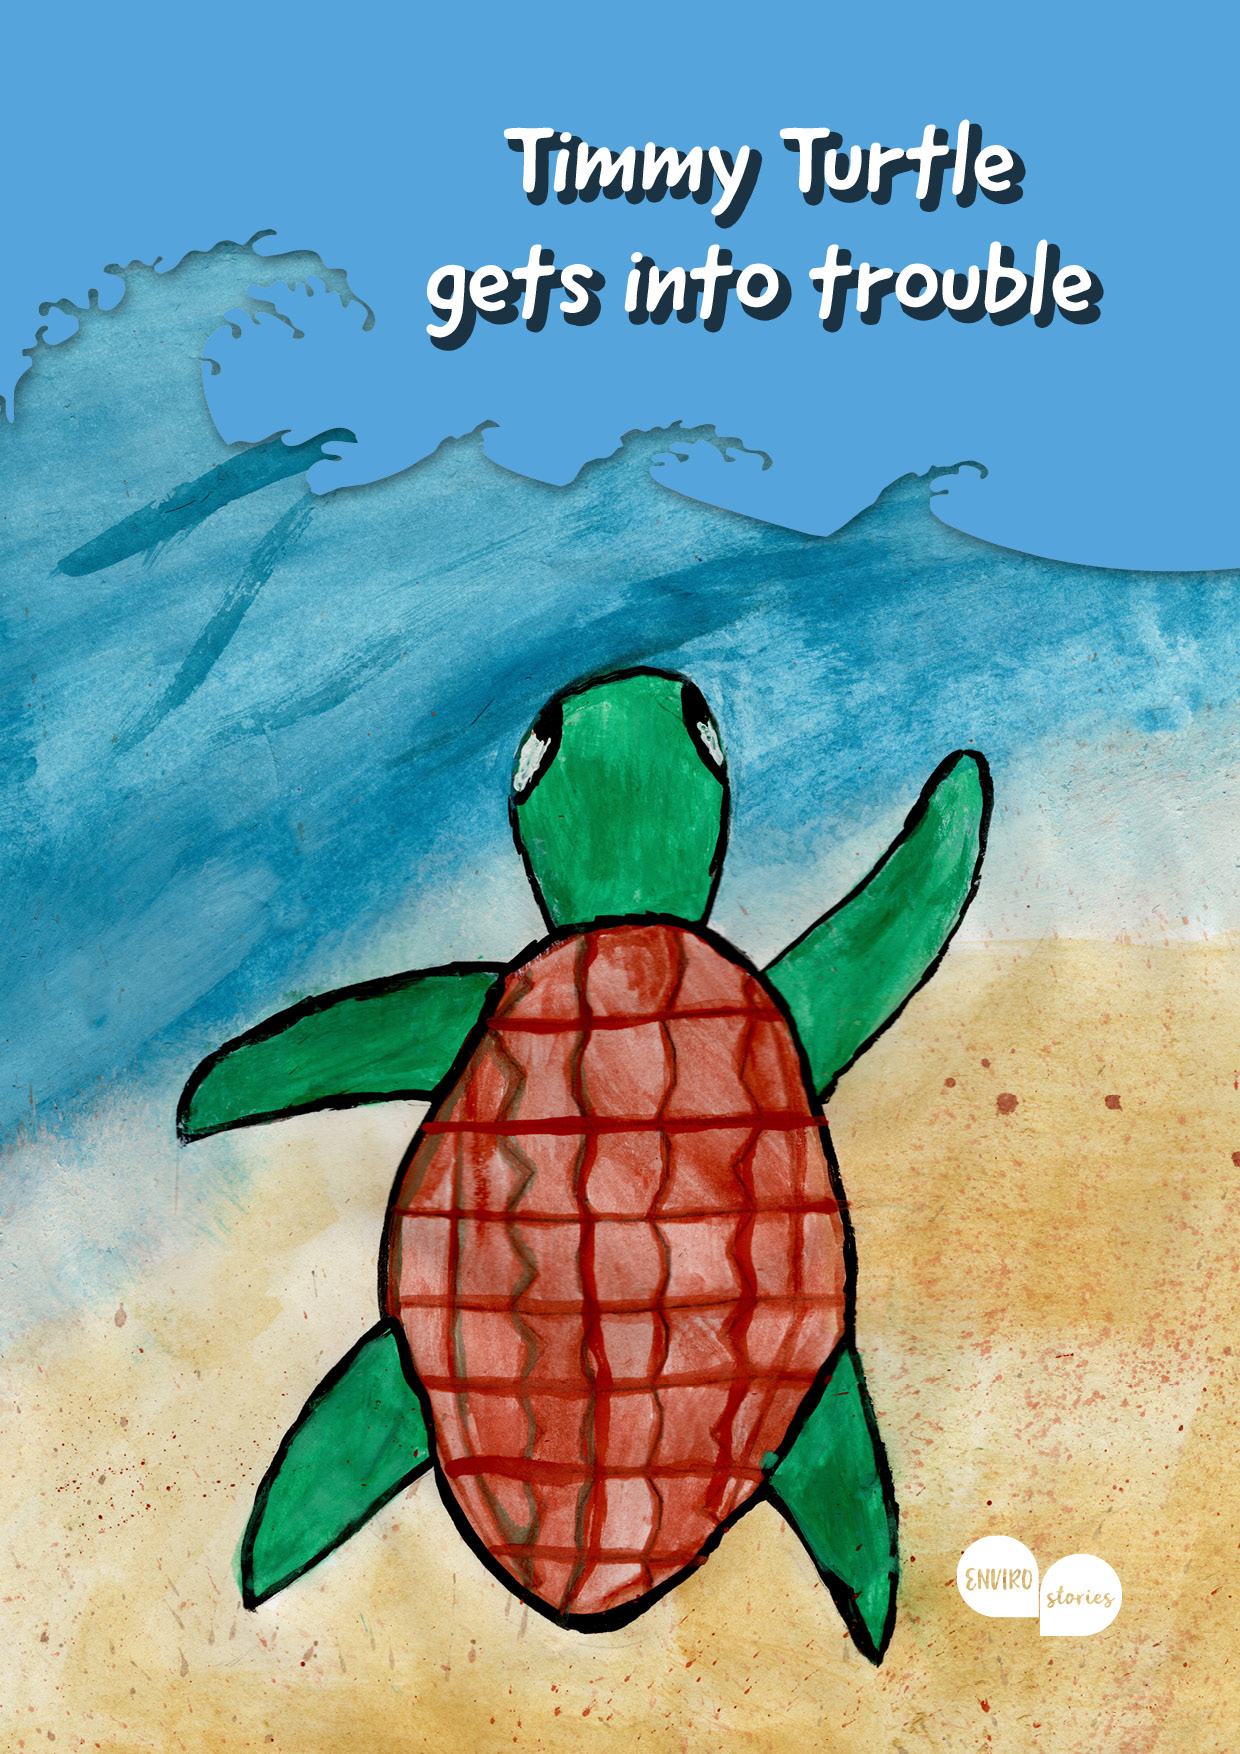 Timmy Turtle gets into trouble